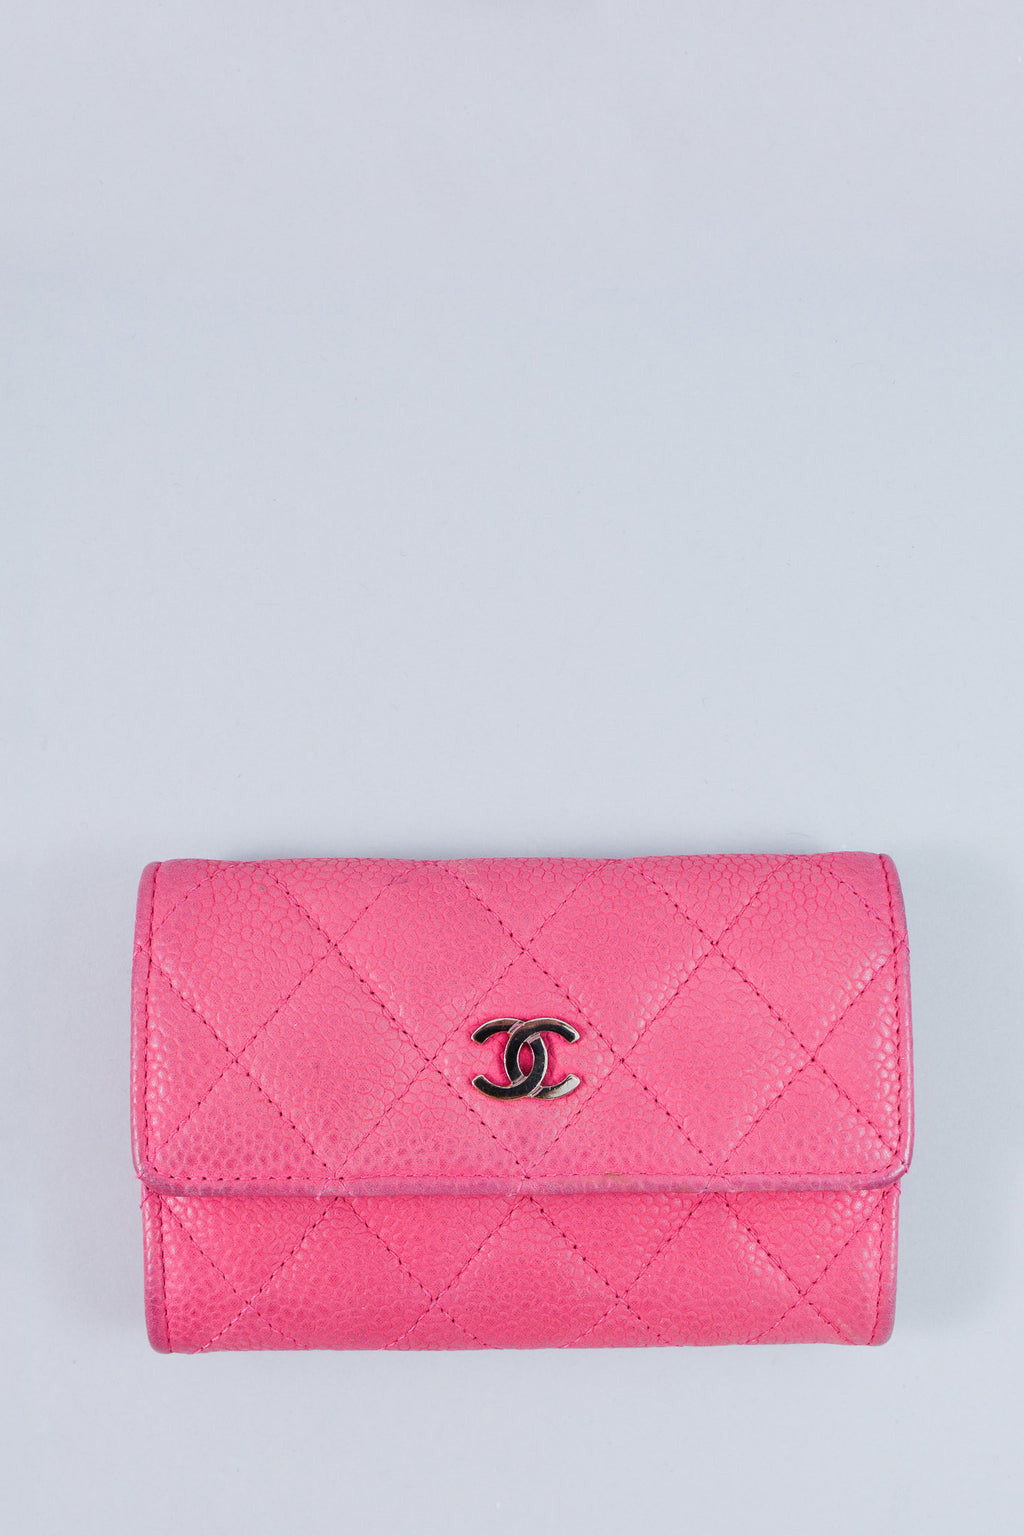 Chanel Pink Quilted Business Card Holder